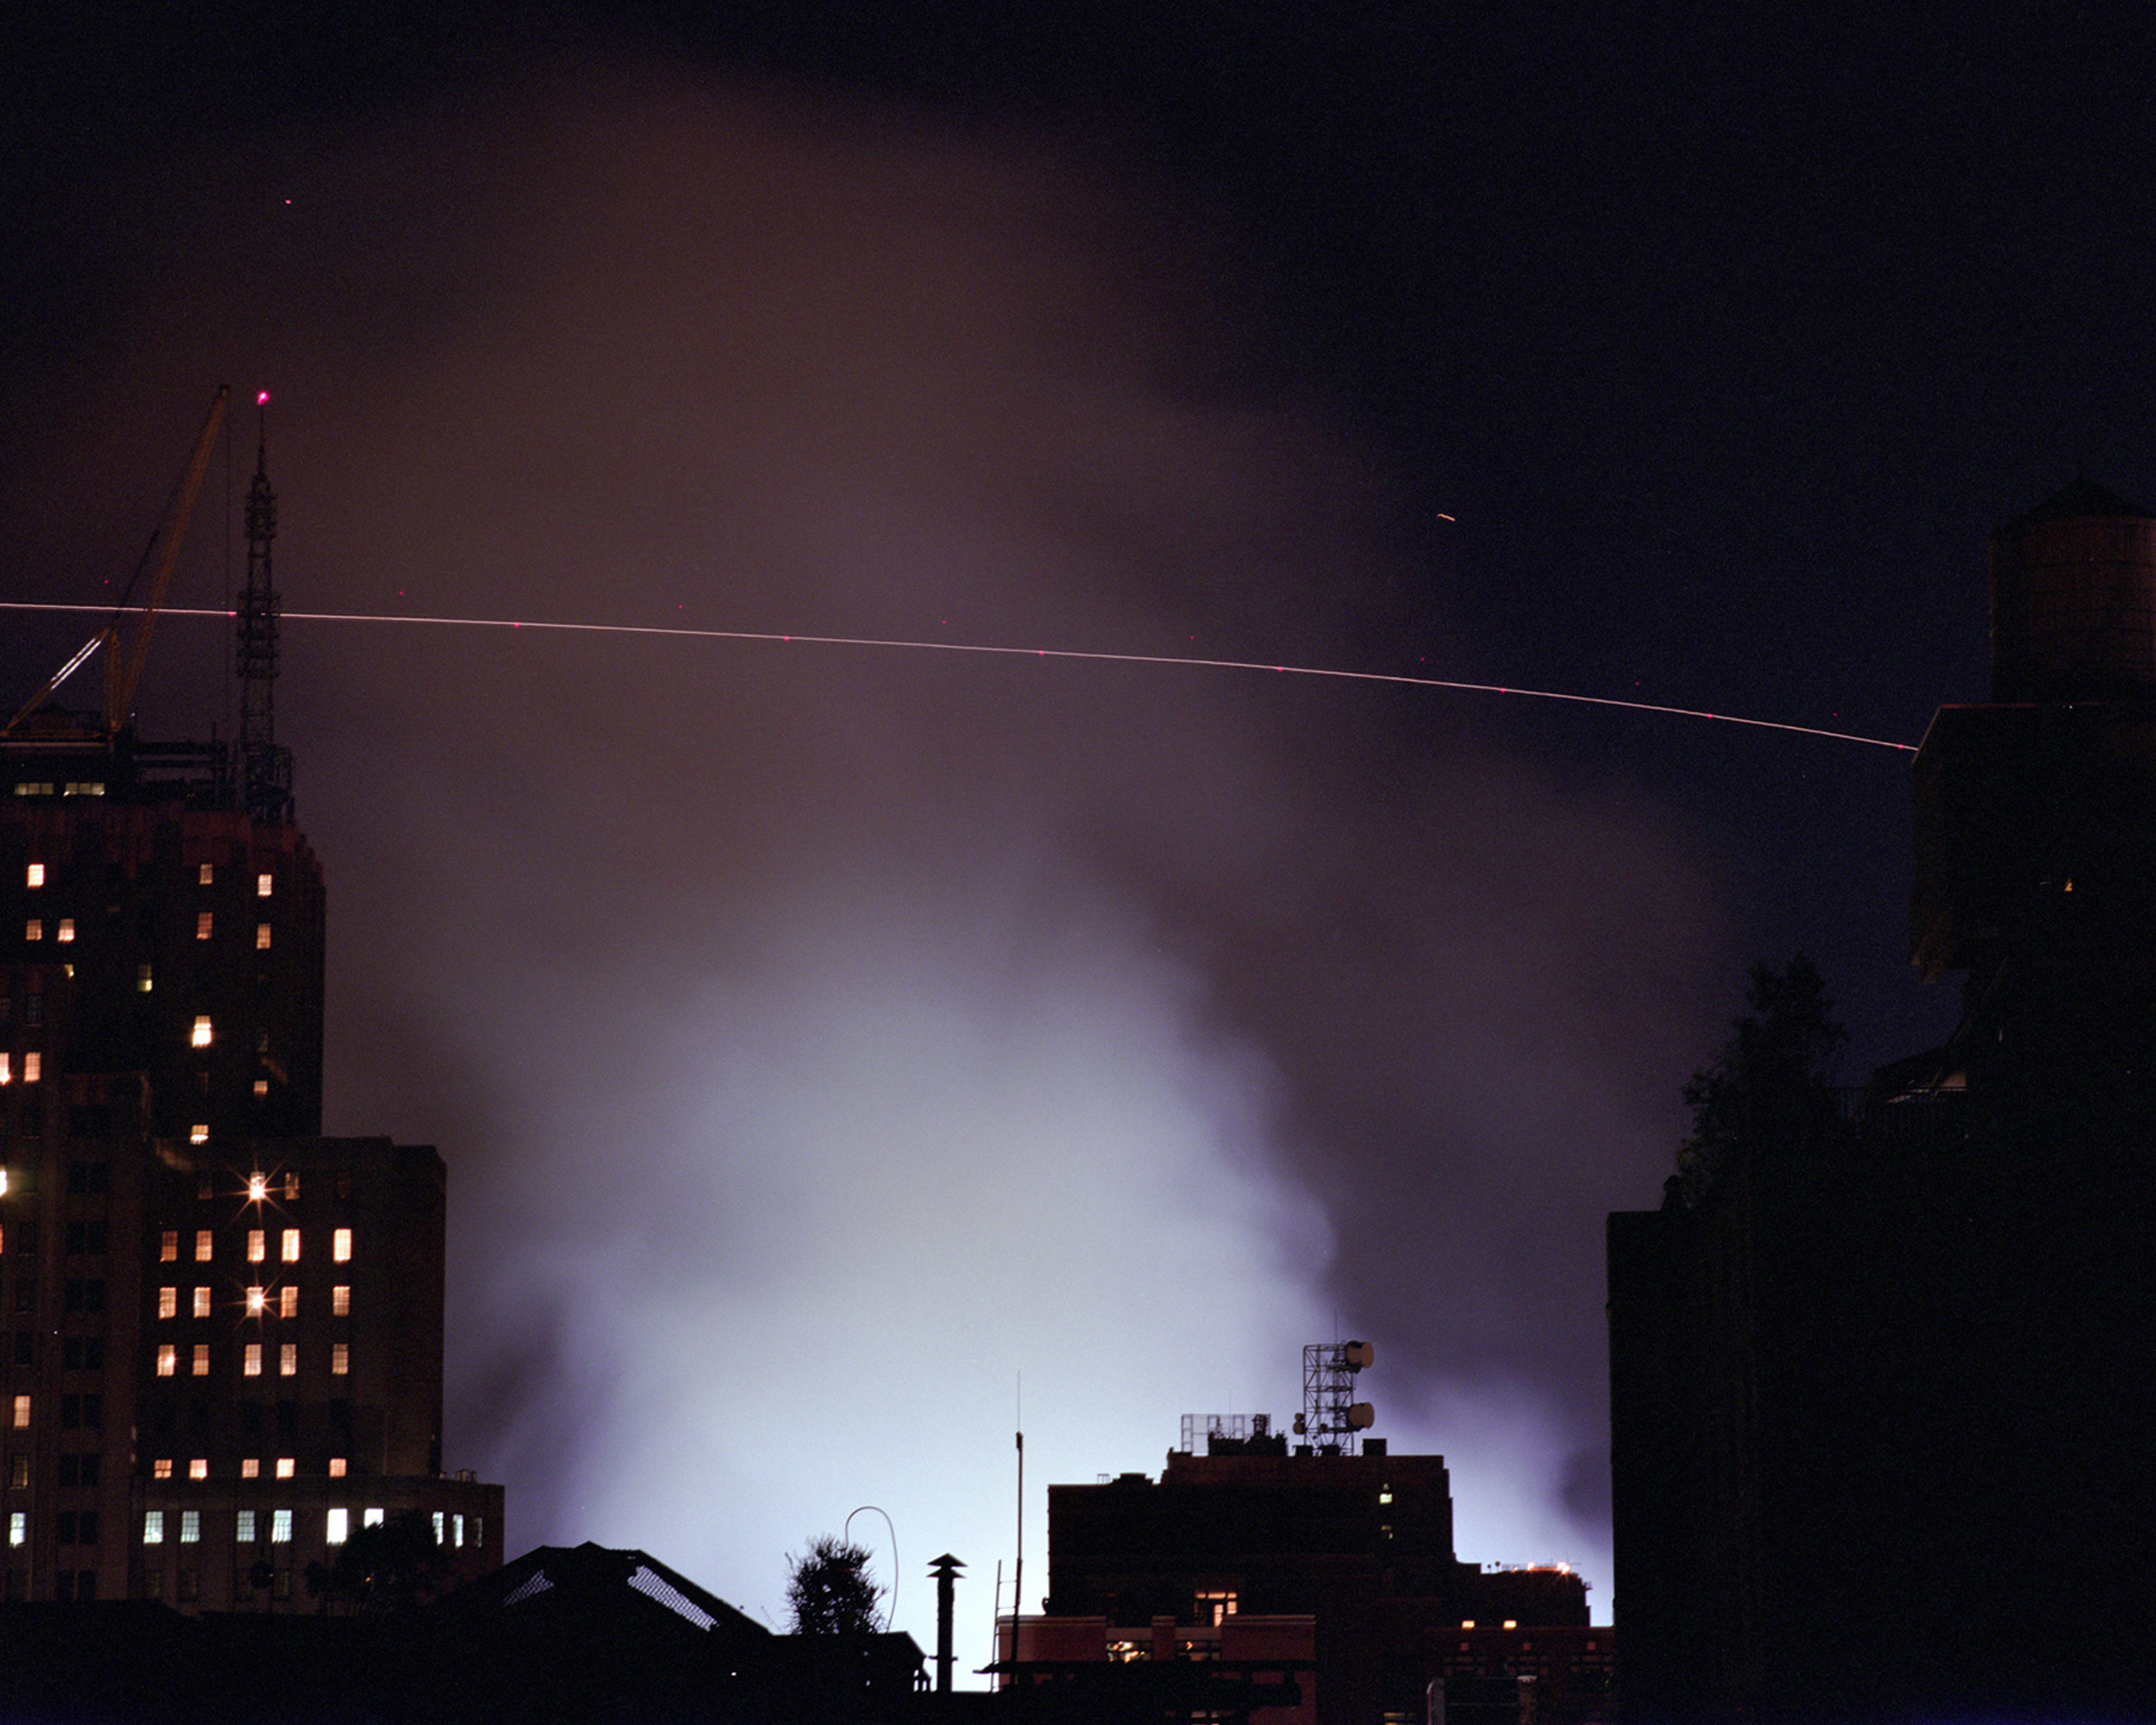 Connie Samaras,  Angelic States - Event Sequence: No Fly Zone, F16 Circling WTC Fires , 9.14.2001  Digital pigment print, 40 x 50 inches, edition of 5   Inquire